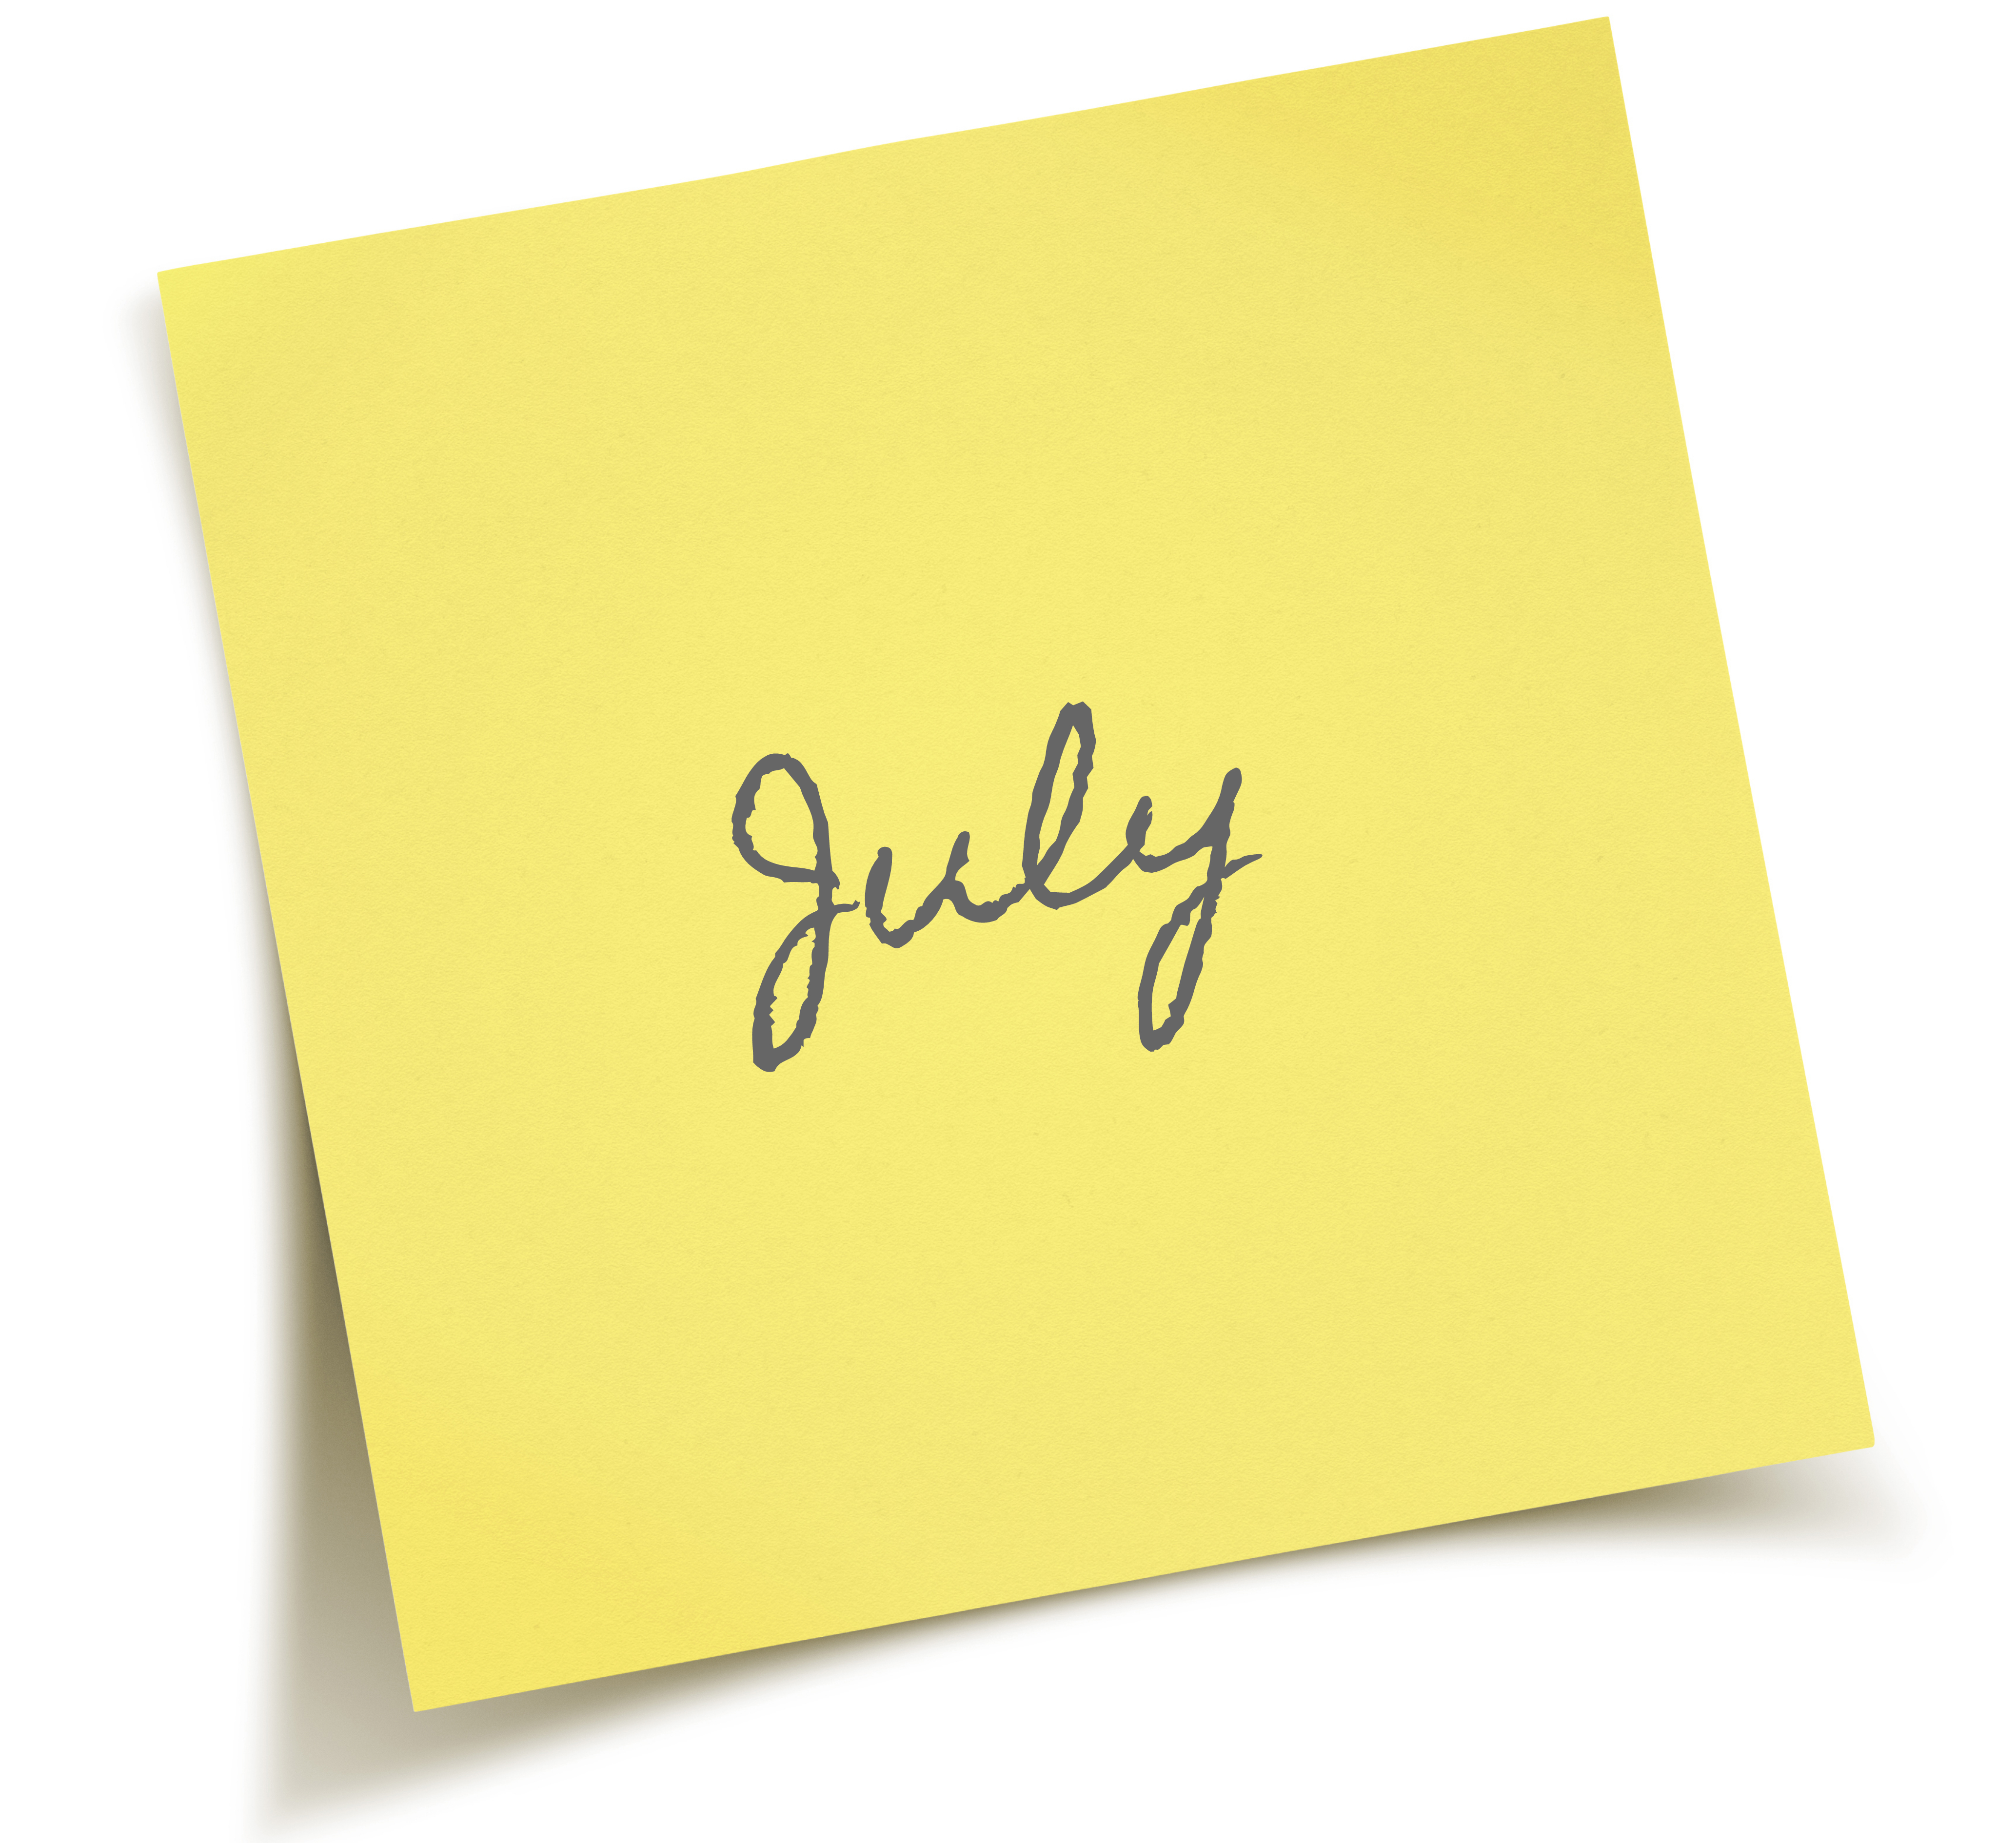 July sticky note